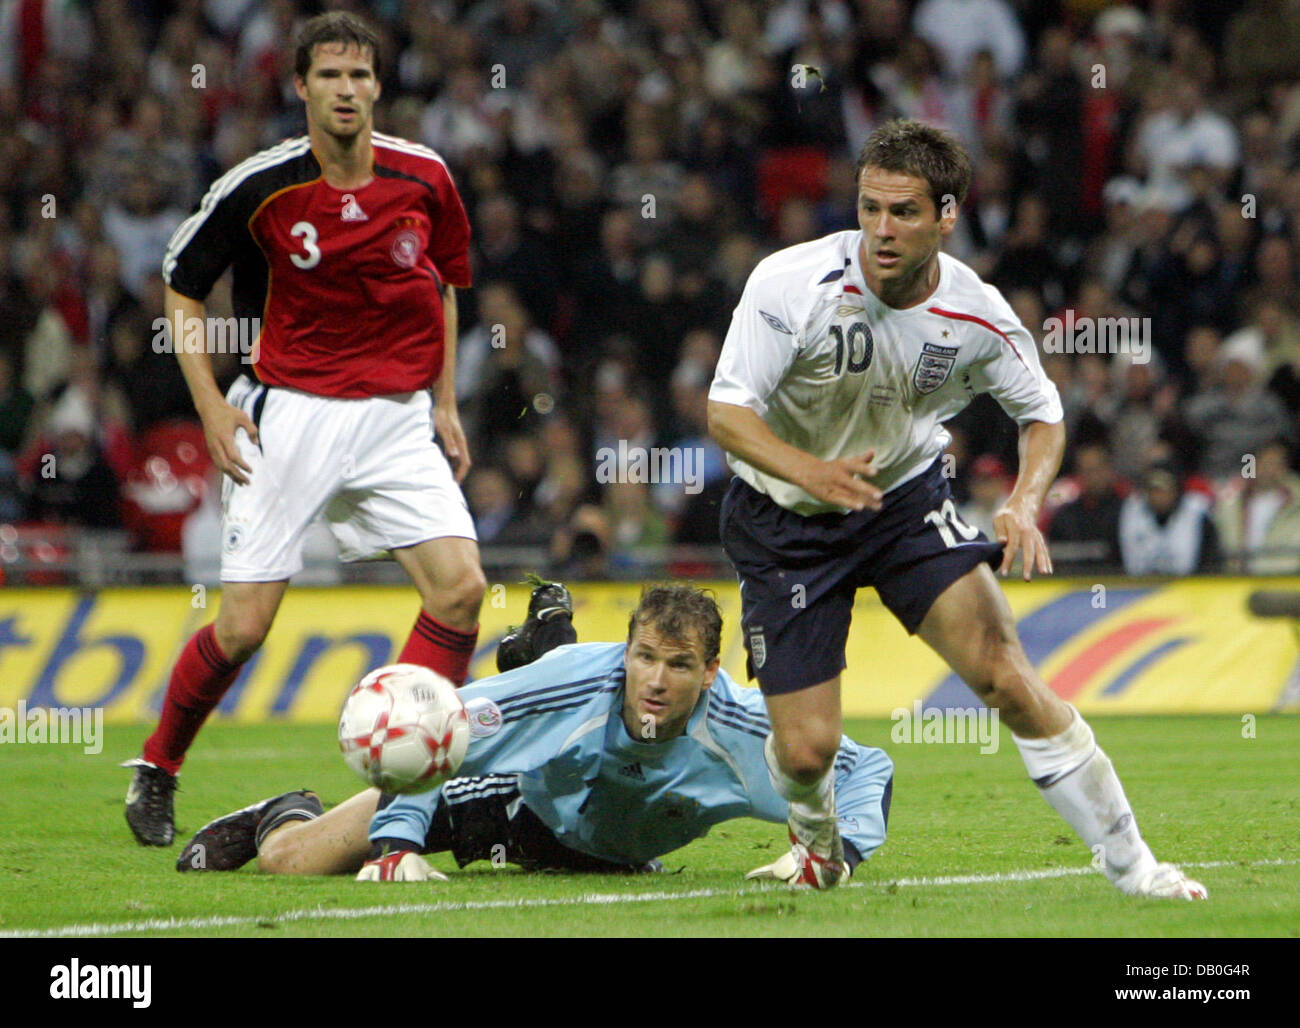 (L-R) Germany's Arne Friedrich, goalie Jens Lehmann and England's Michael Owen want the ball during the friendly Stock Photo